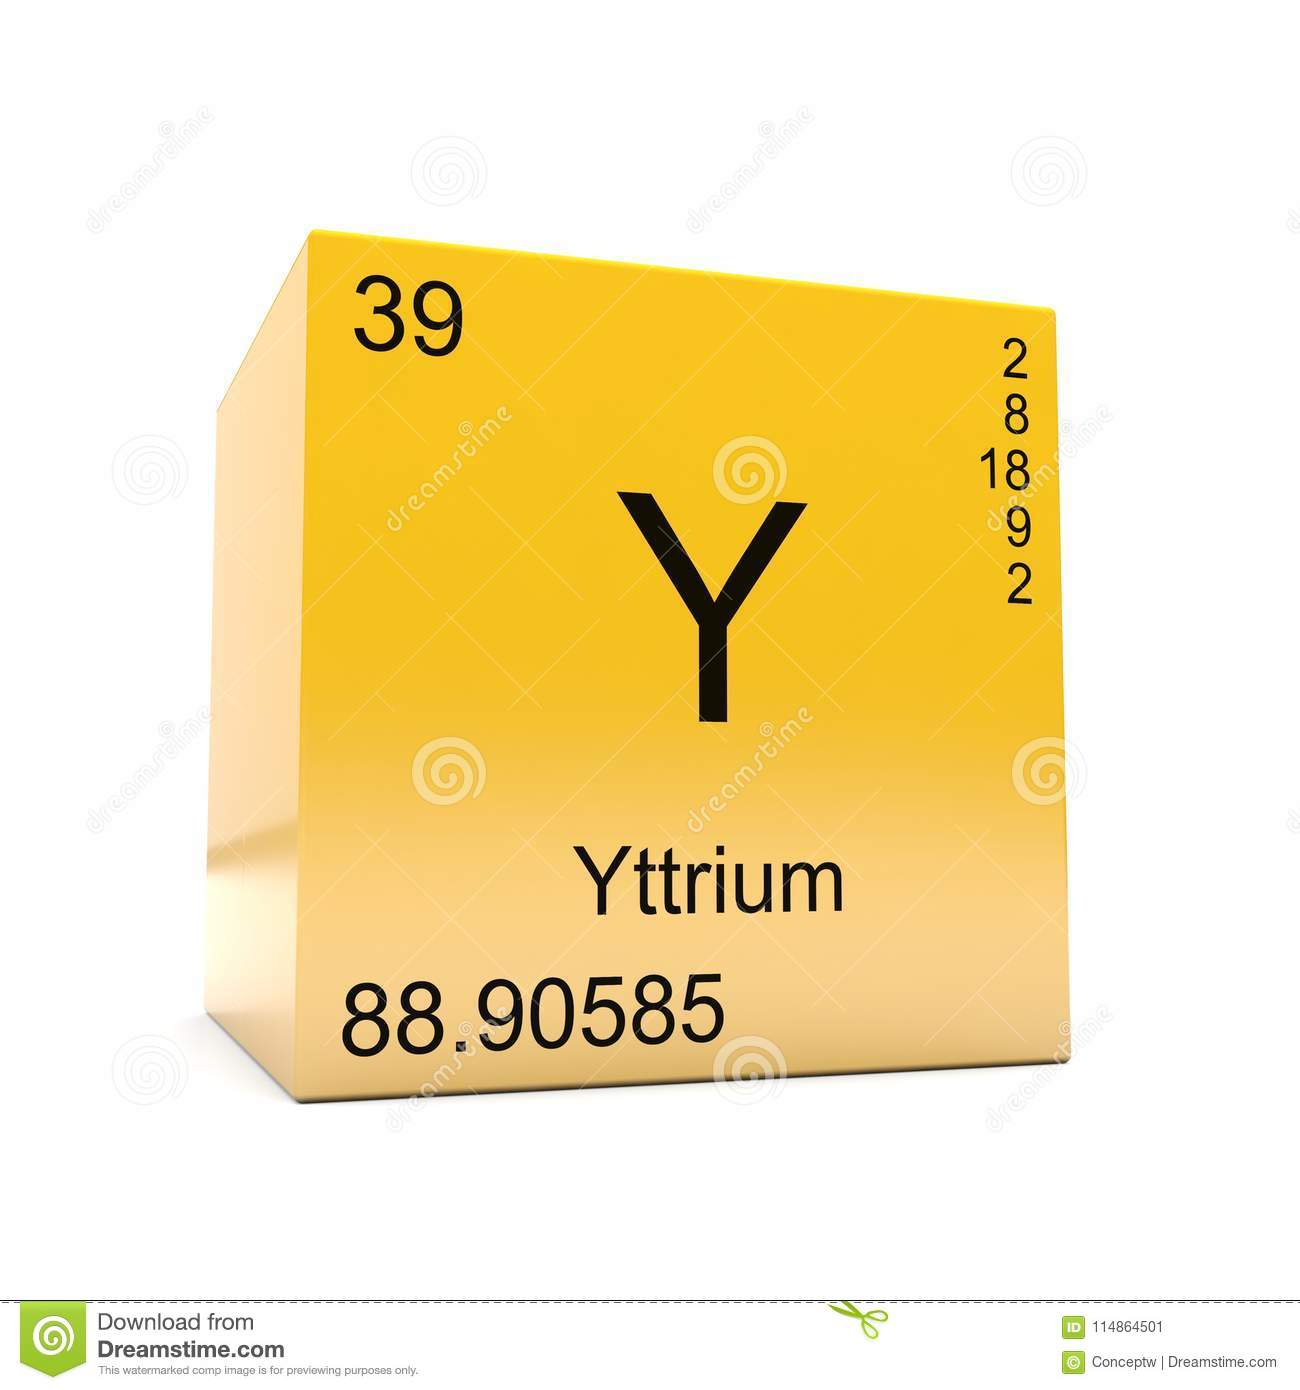 Yttrium Chemical Element Symbol From Periodic Table Stock